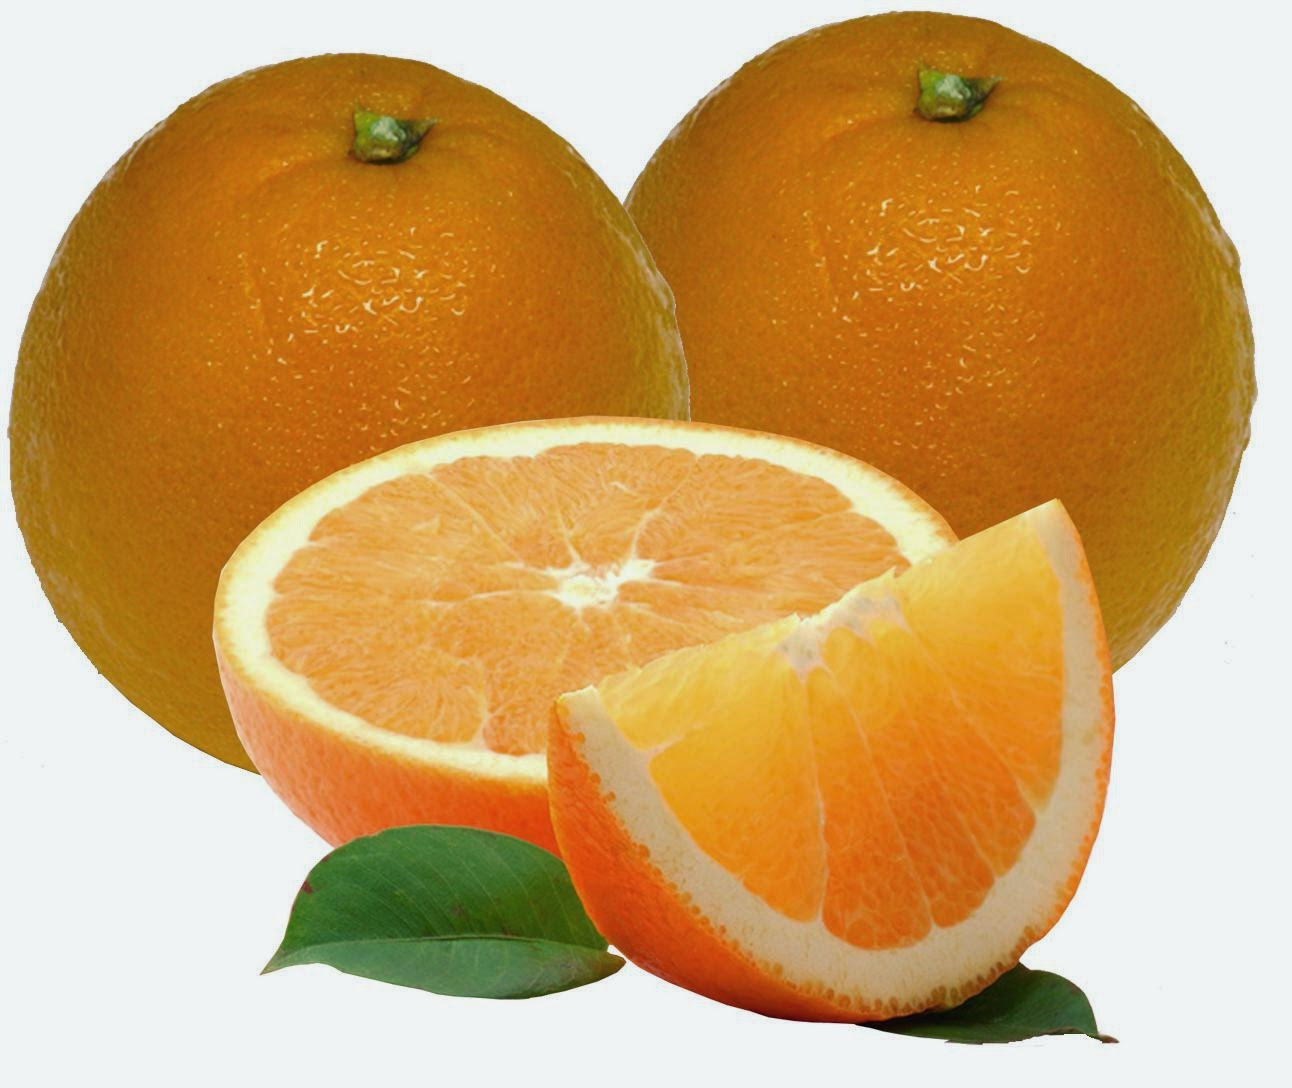 New SavingStar Coupon: 20% Off Oranges